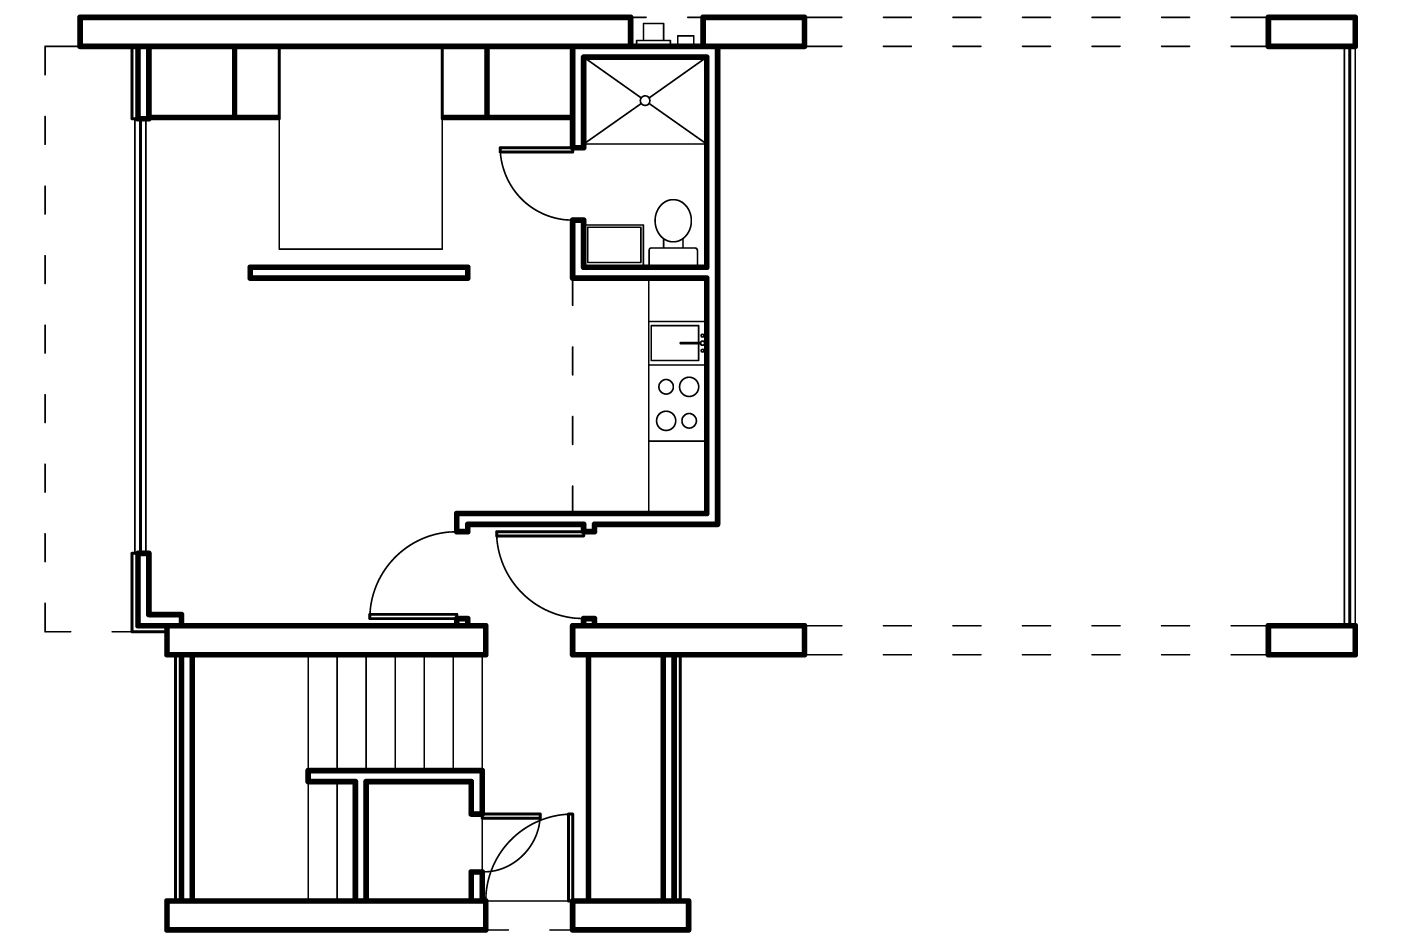 1000+ images about Favorite House Plans on Pinterest - ^